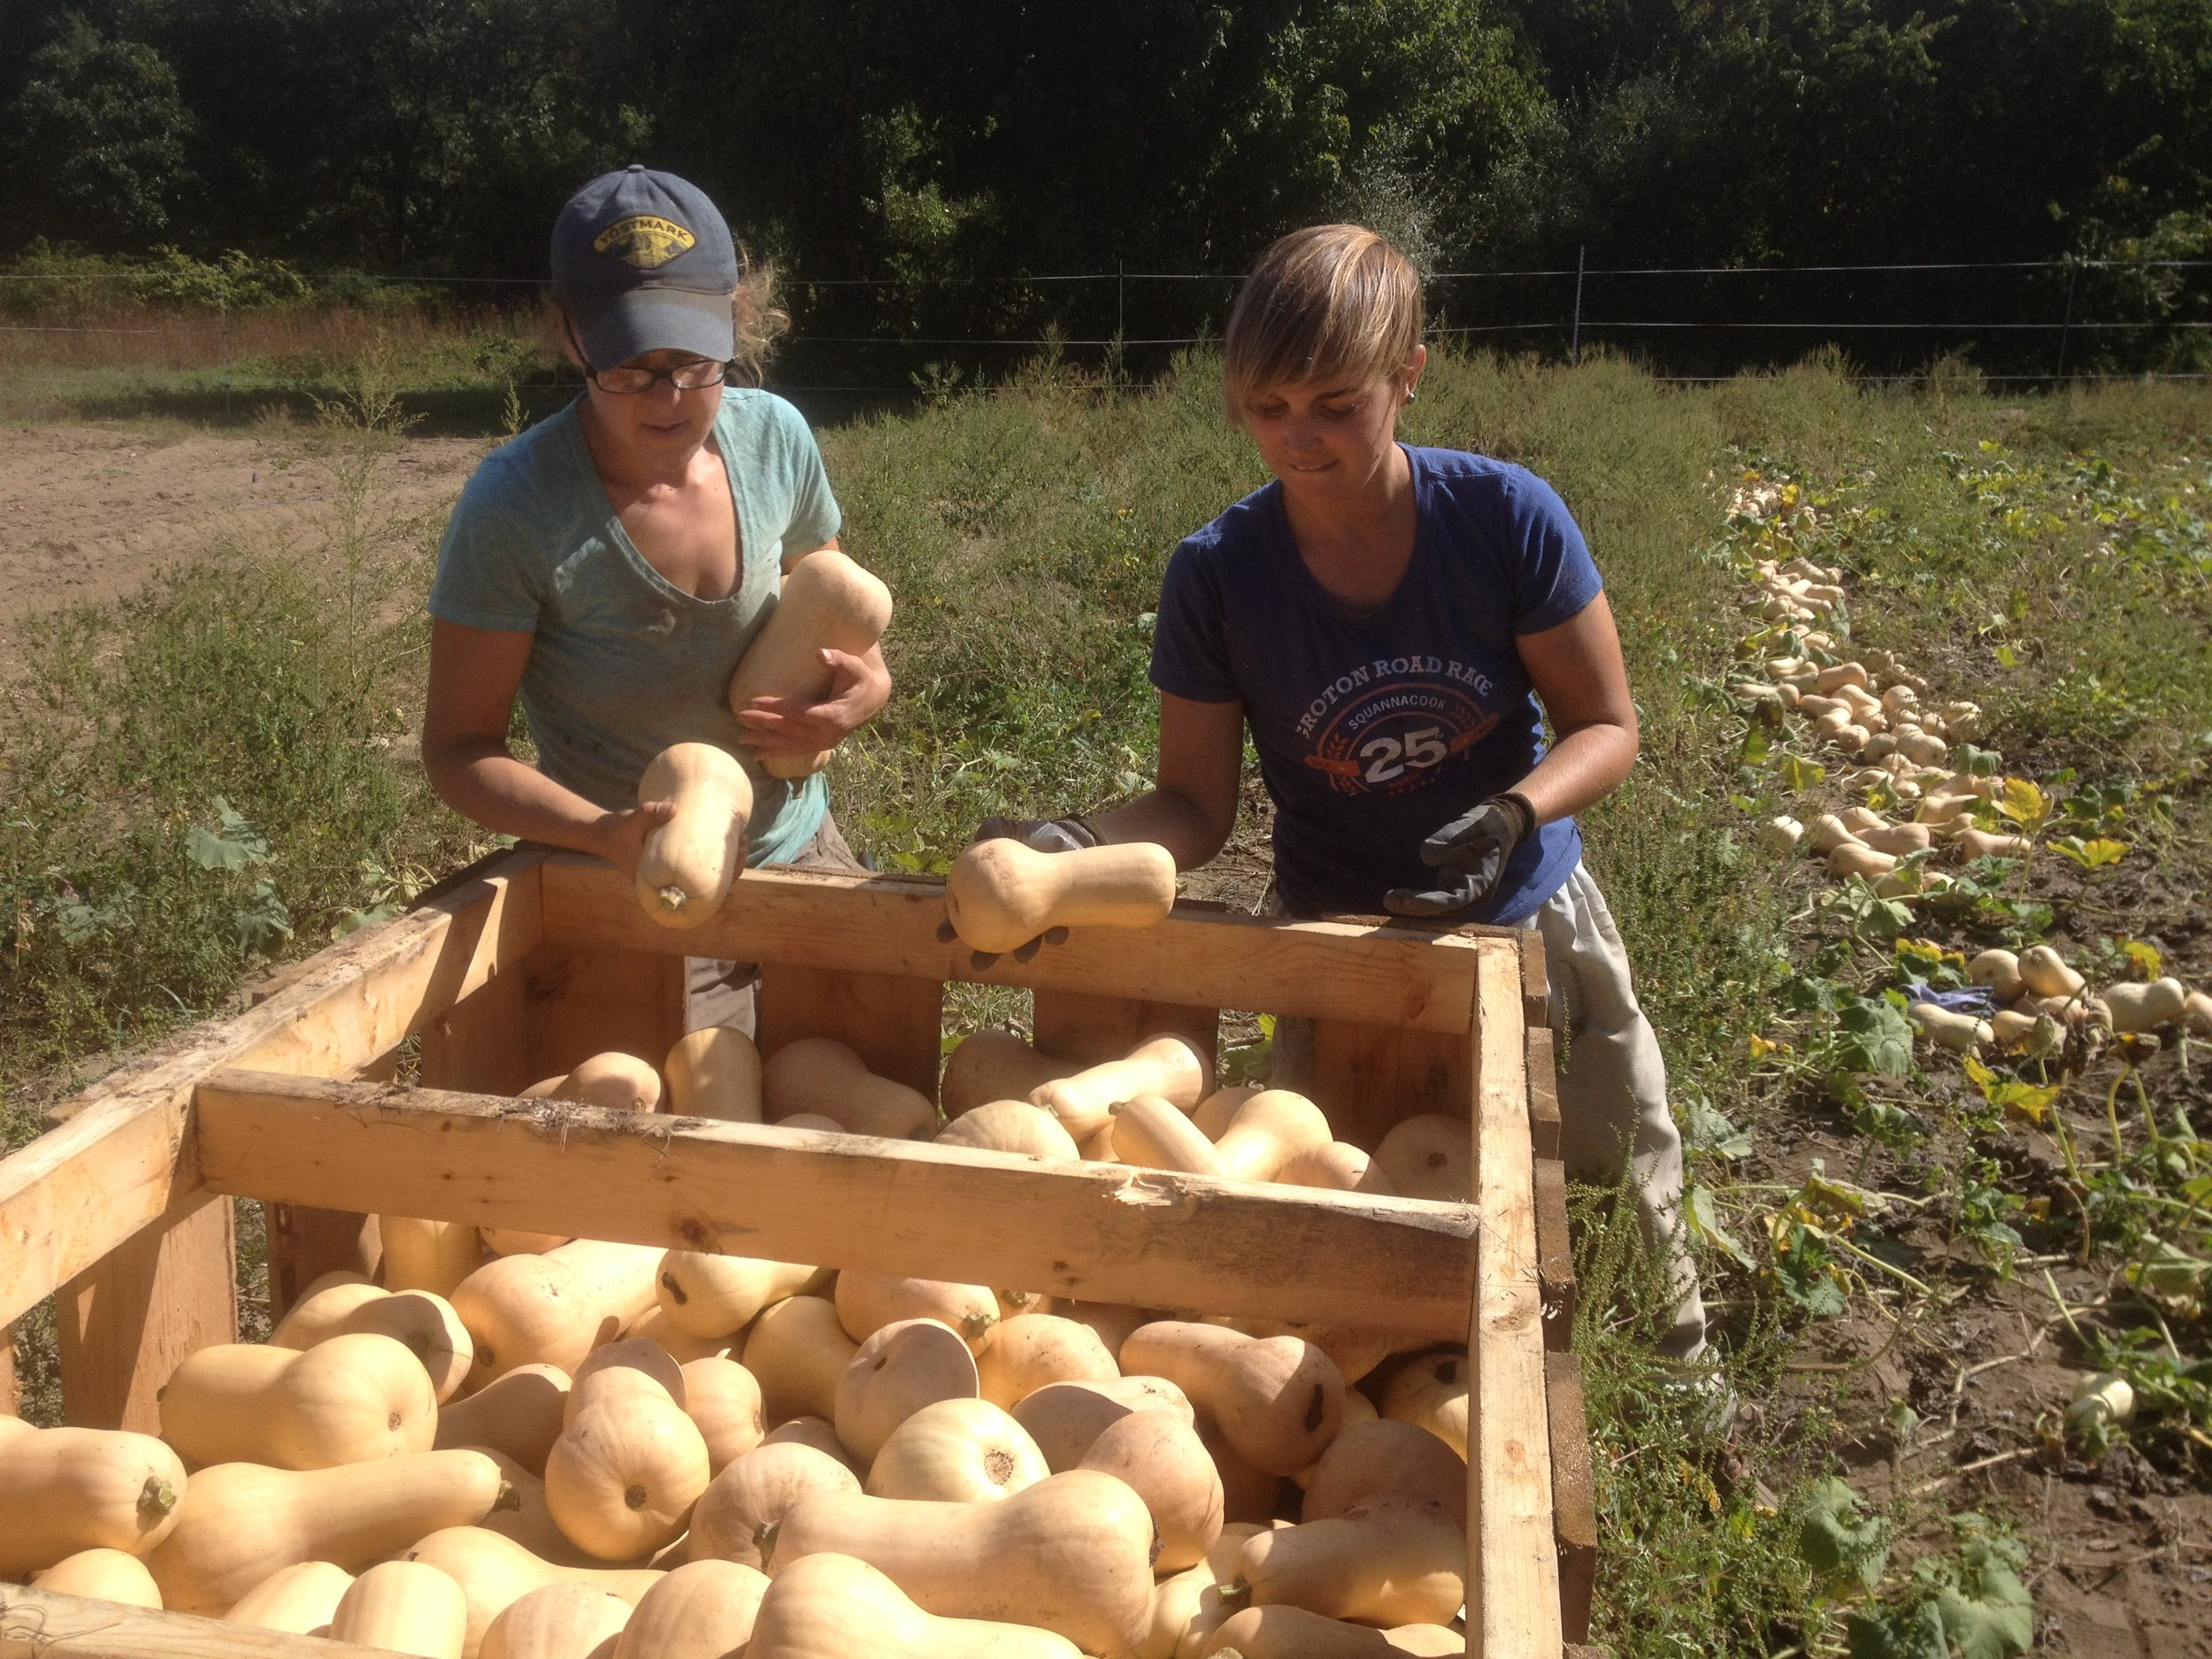 Melissa and Wyatt harvest butternut squash - it looks like an excellent harvest this year - we'll see them in the store and CSA soon after they've had a chance to cure in the barn!